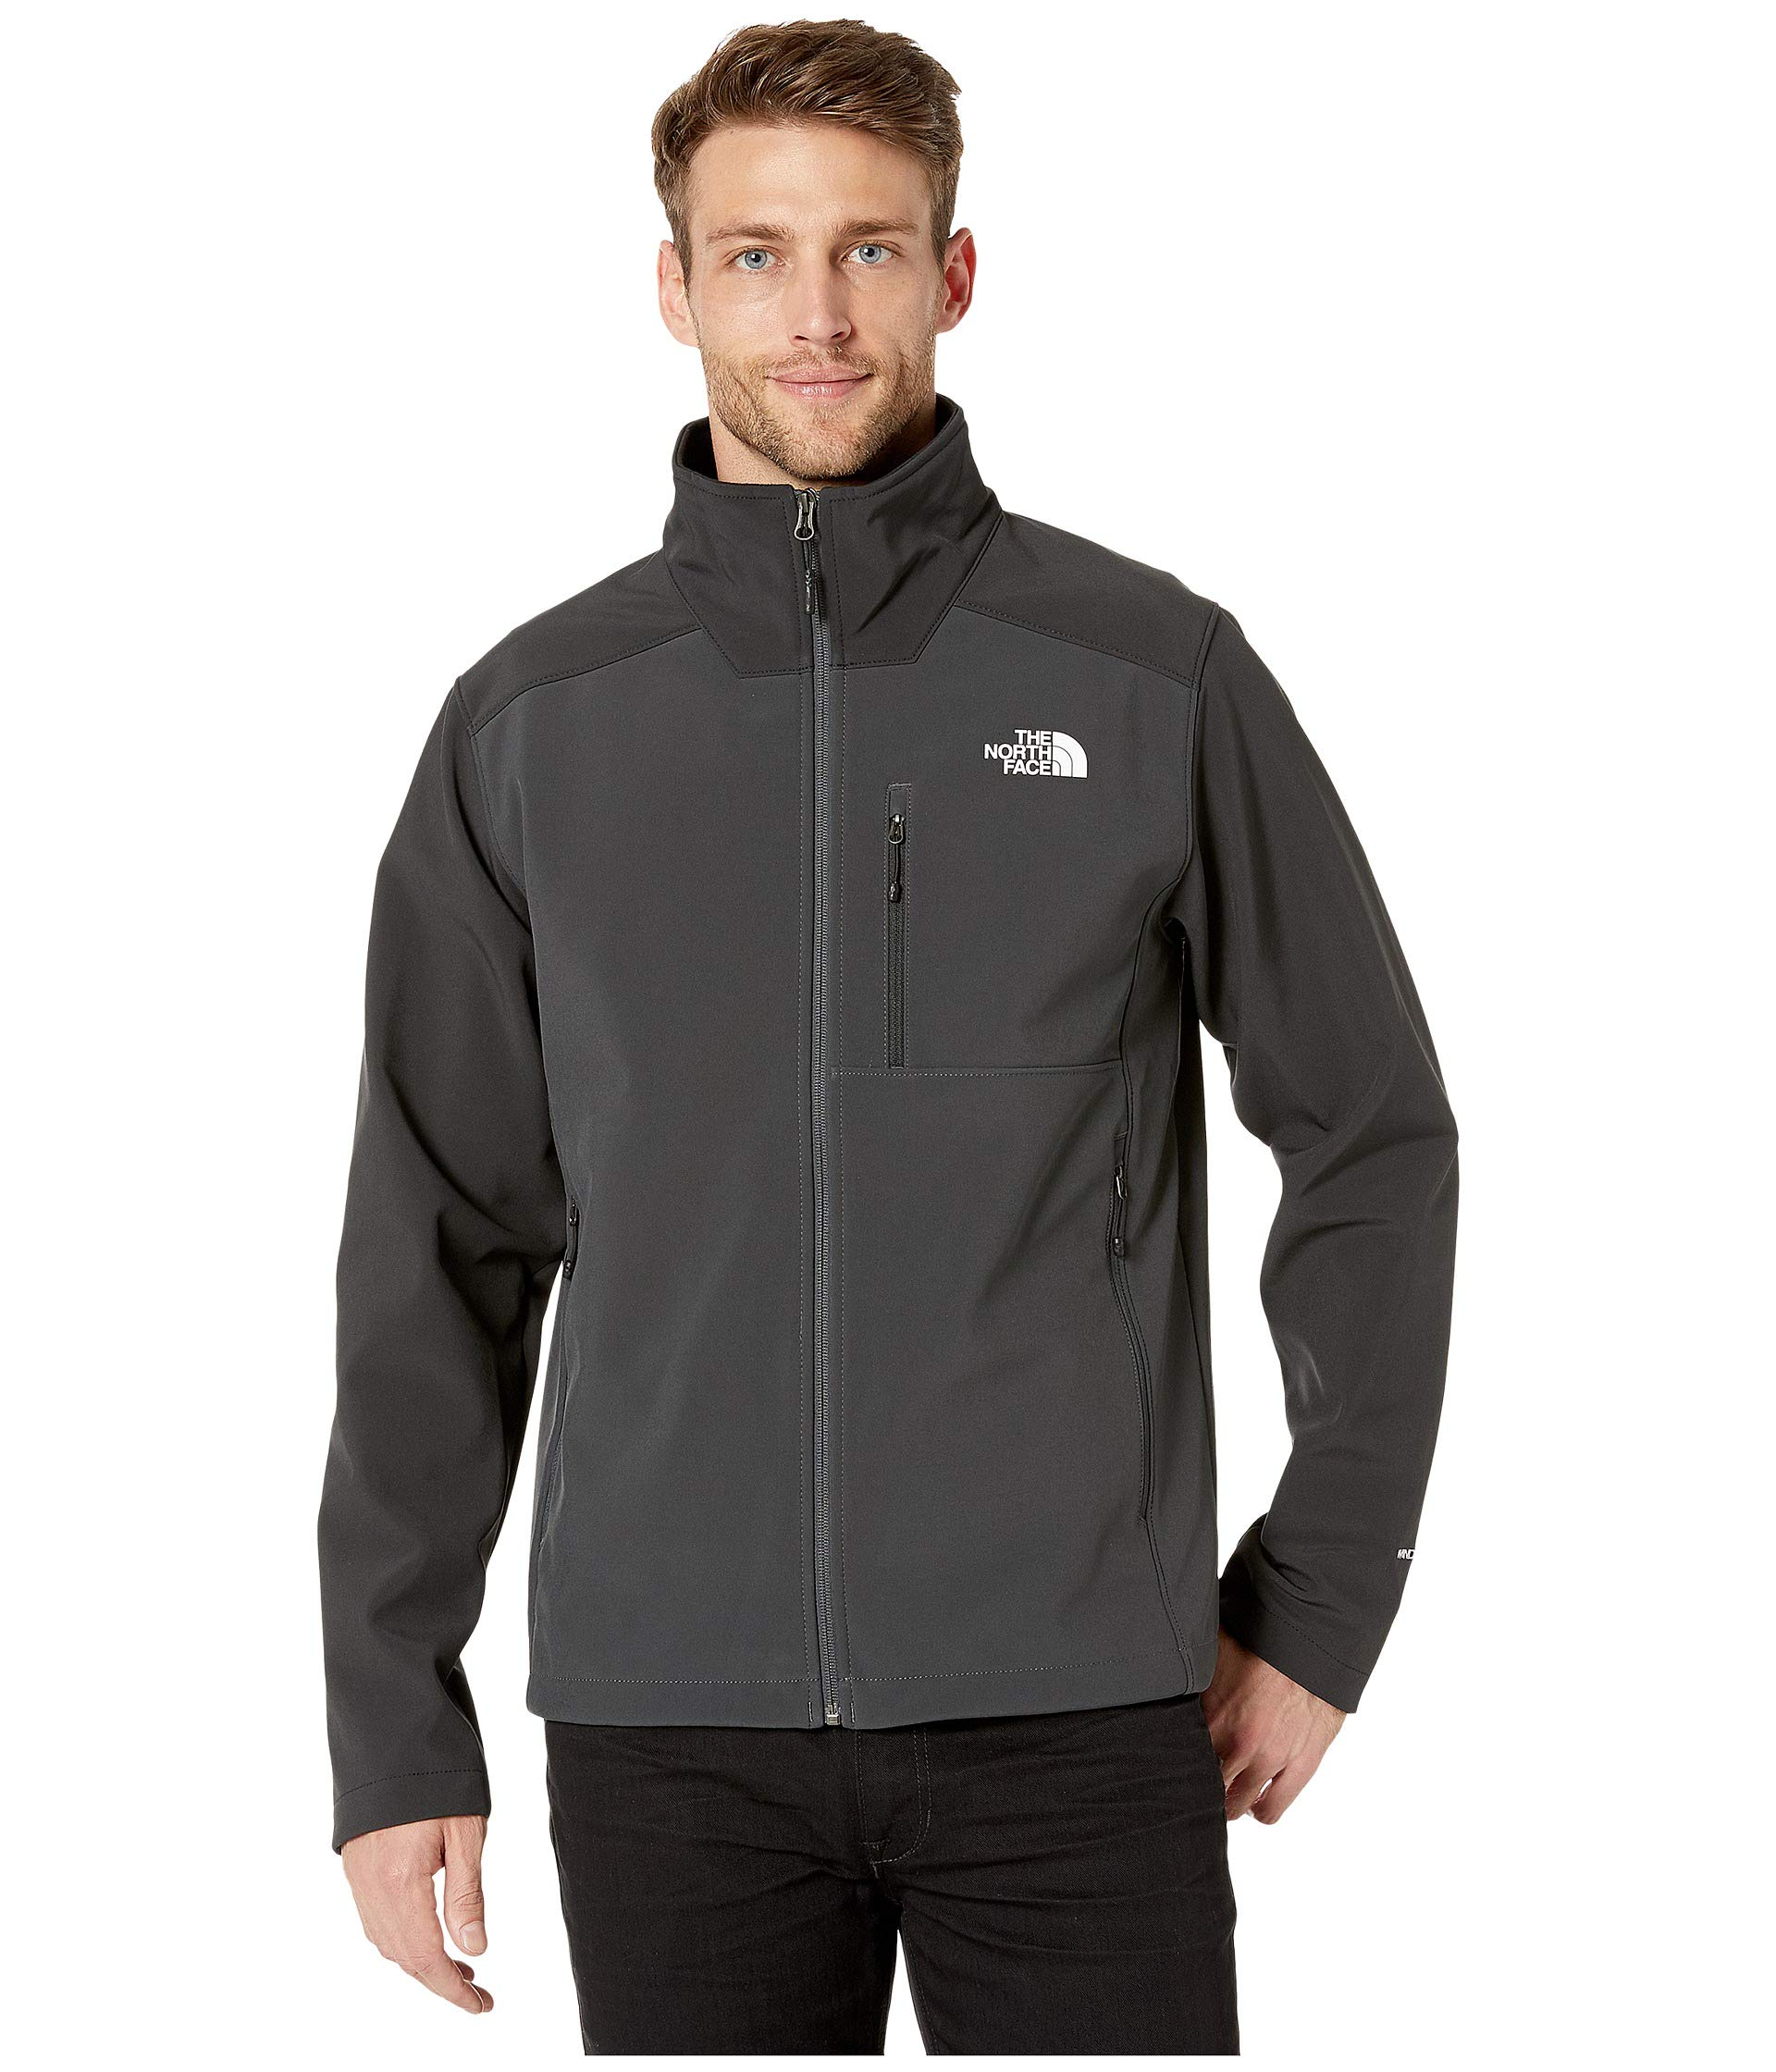 The North Face Men's Apex Bionic 2 Jacket, Asphalt Grey/TNF Black, X-Large by The North Face